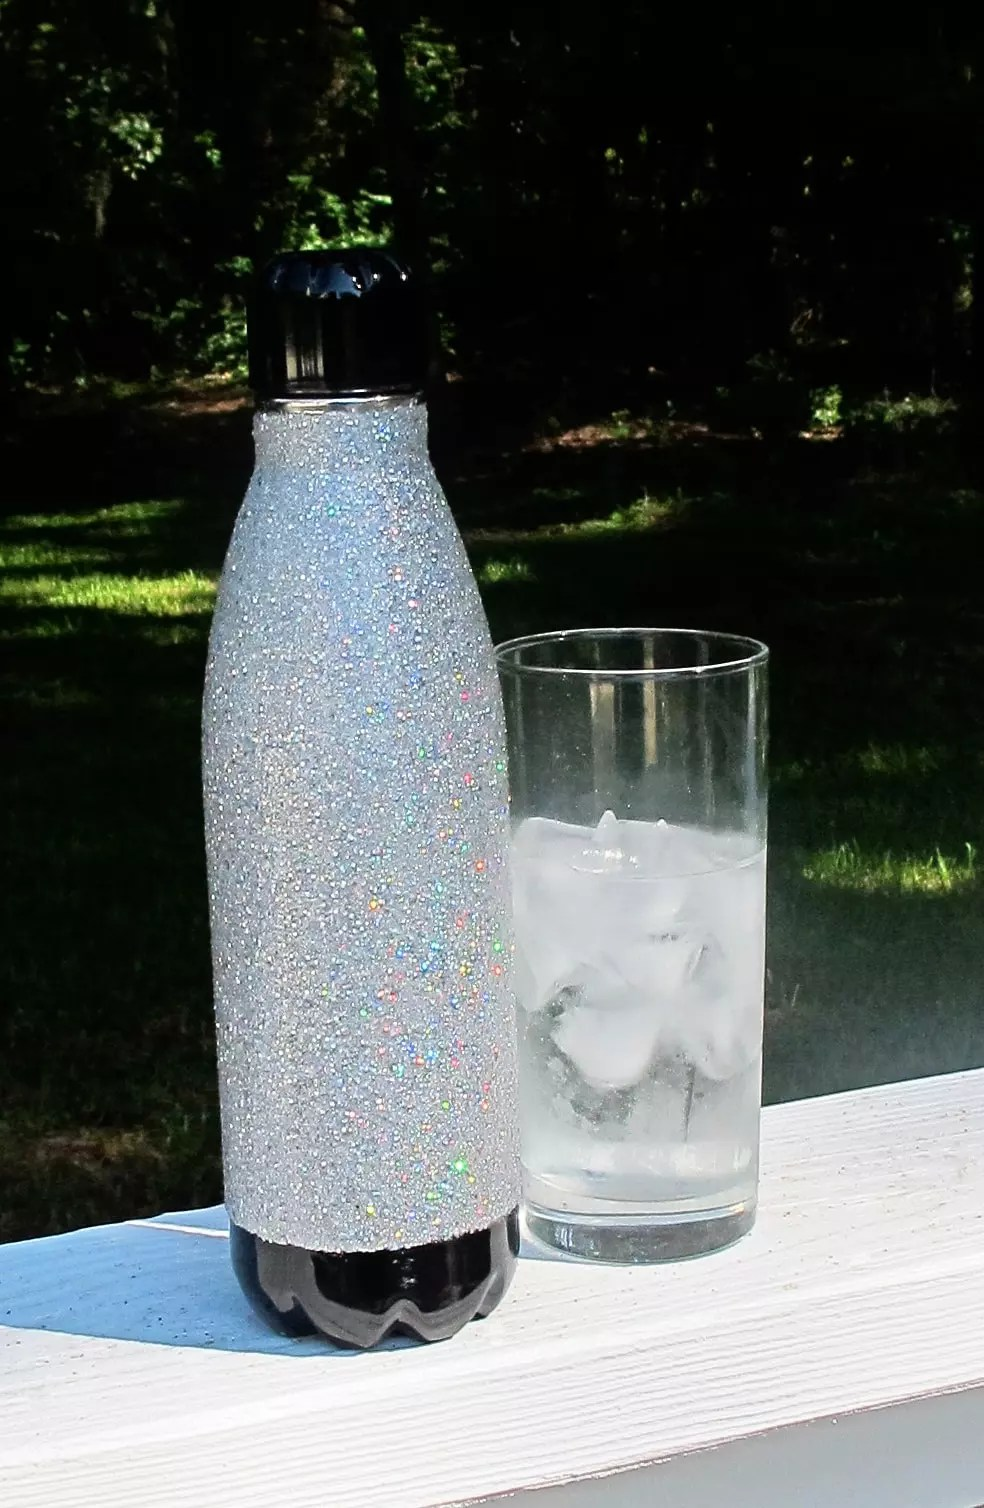 stainless steel tumbler covered with glitter and resin